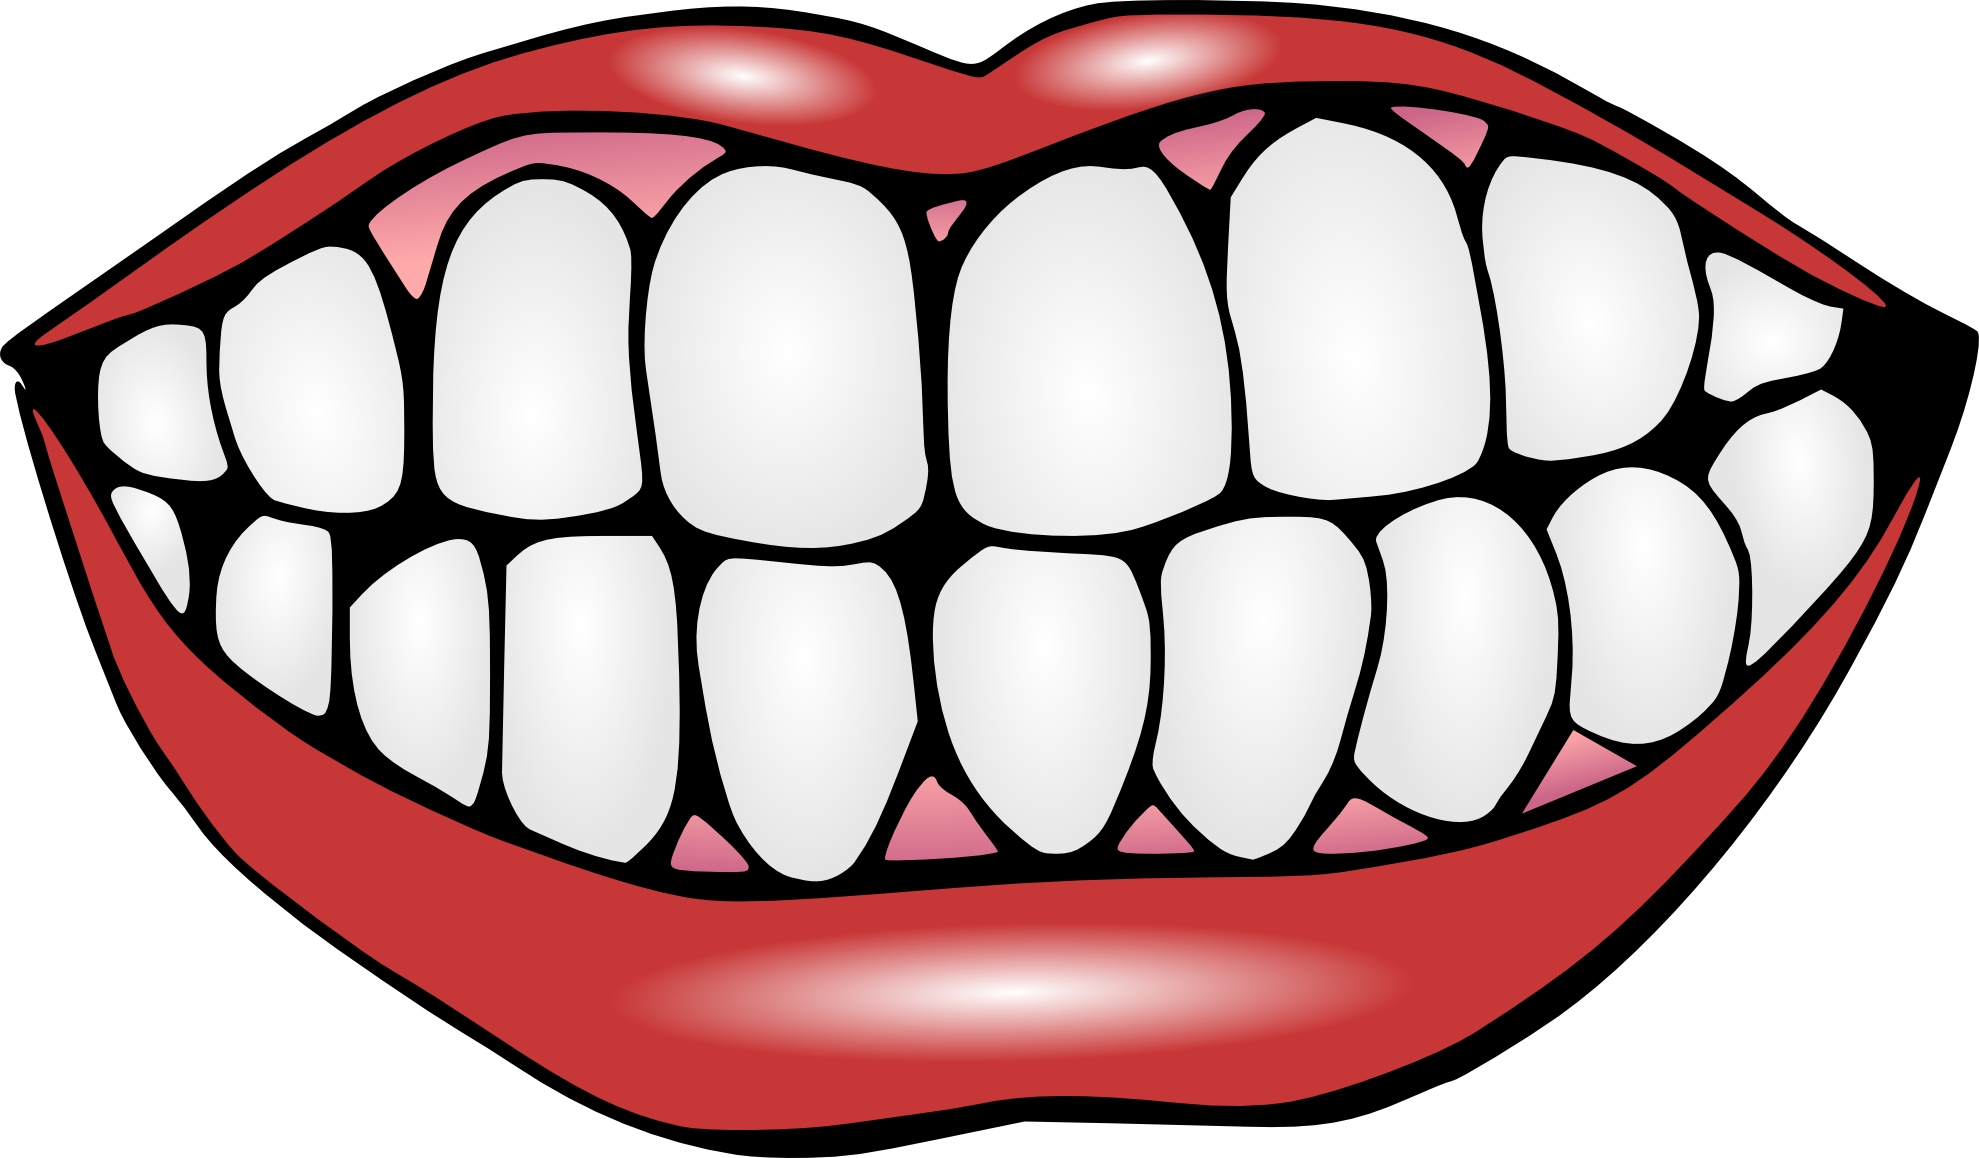 Teeth transparent pencil and. Tooth clipart chalkboard